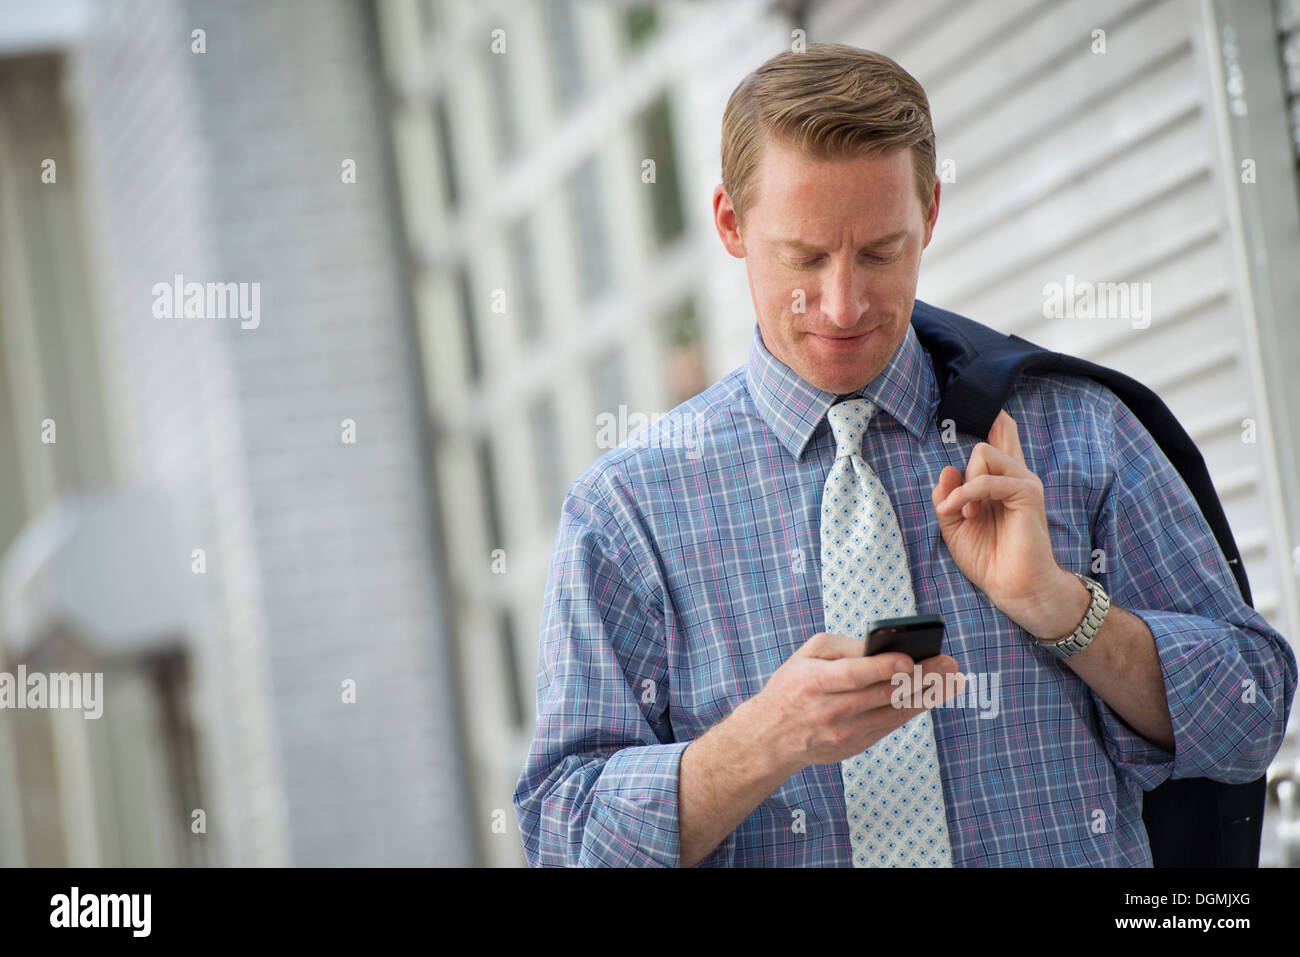 A man with his jacket slung over his shoulder, checking his phone. - Stock Image